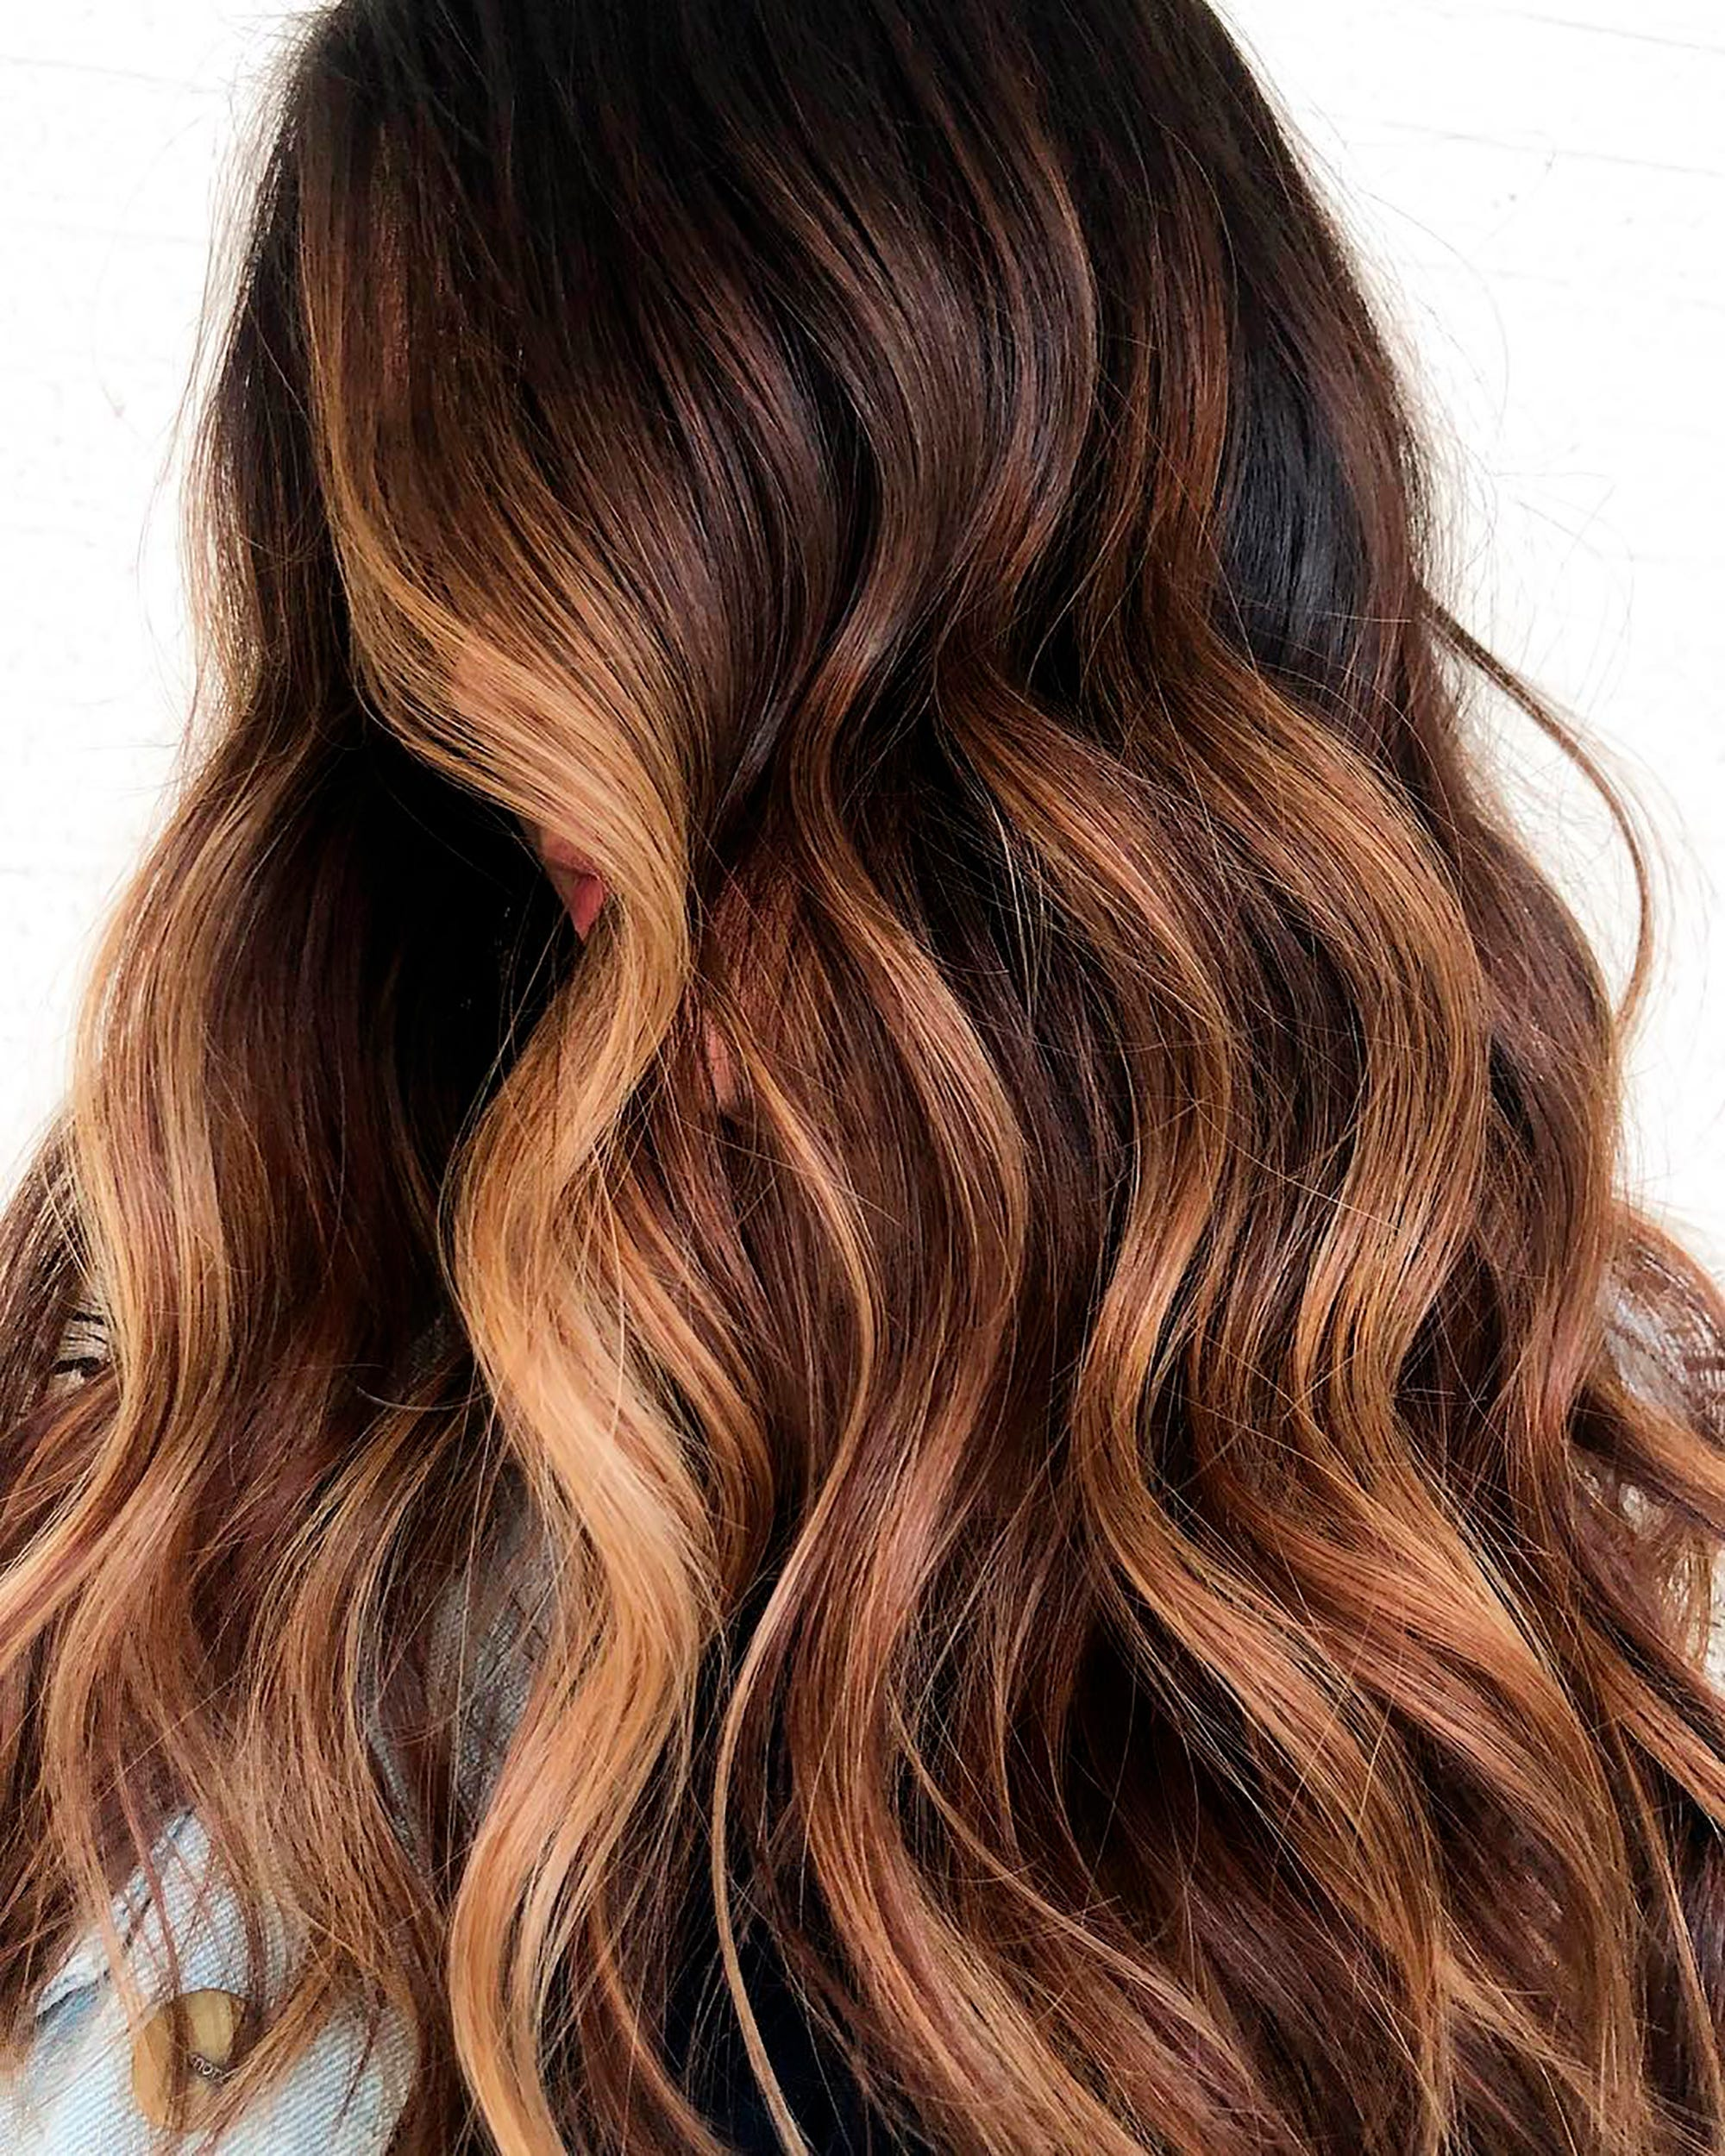 What Is Balayage Negative Space Hair Colour